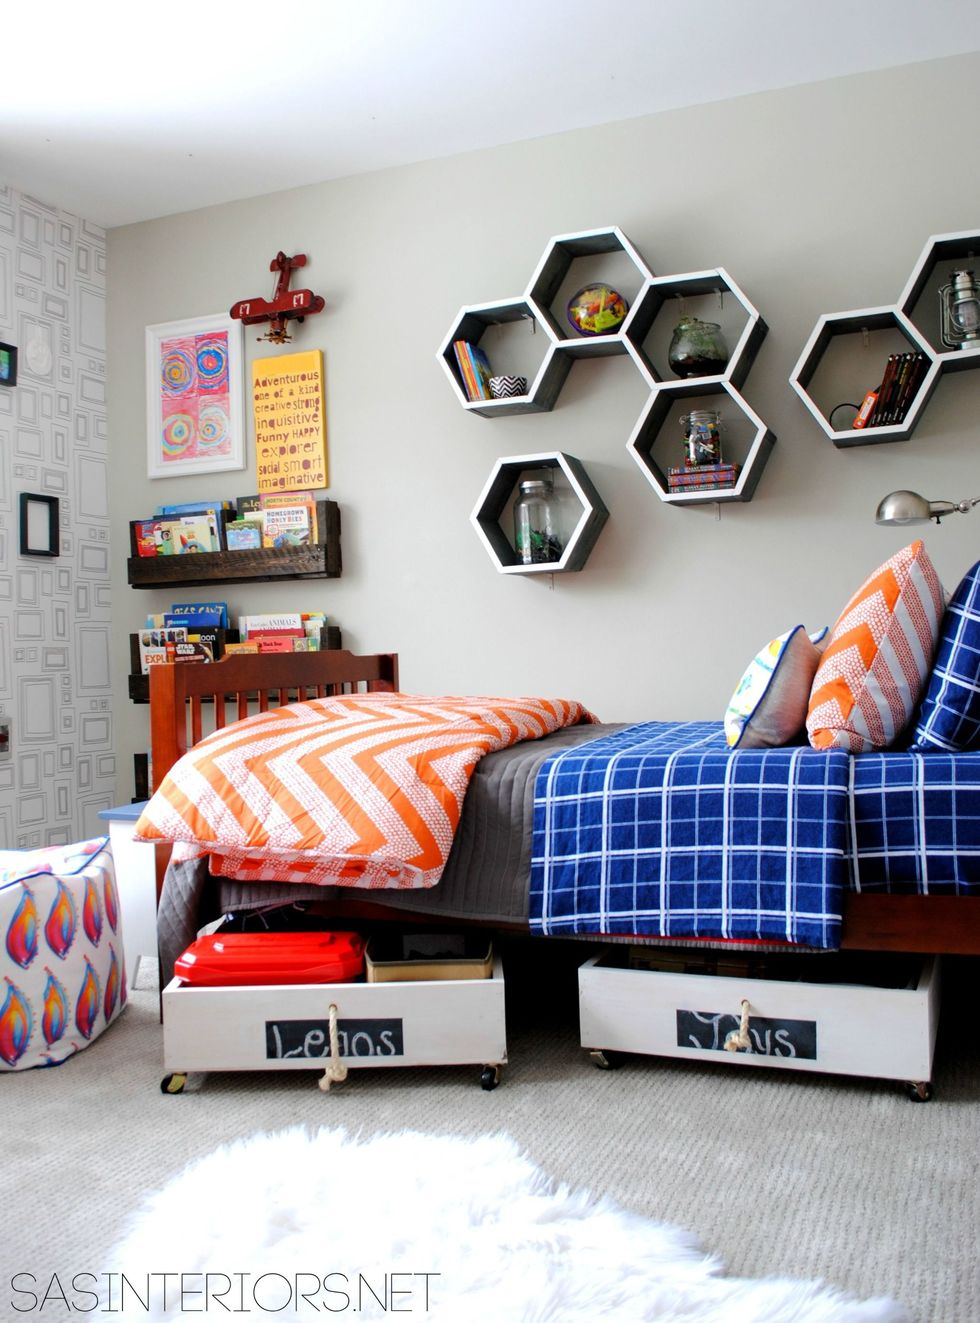 The under-bed drawers - Clever DIY Toy Storage & Organization Ideas & Projects For Kids